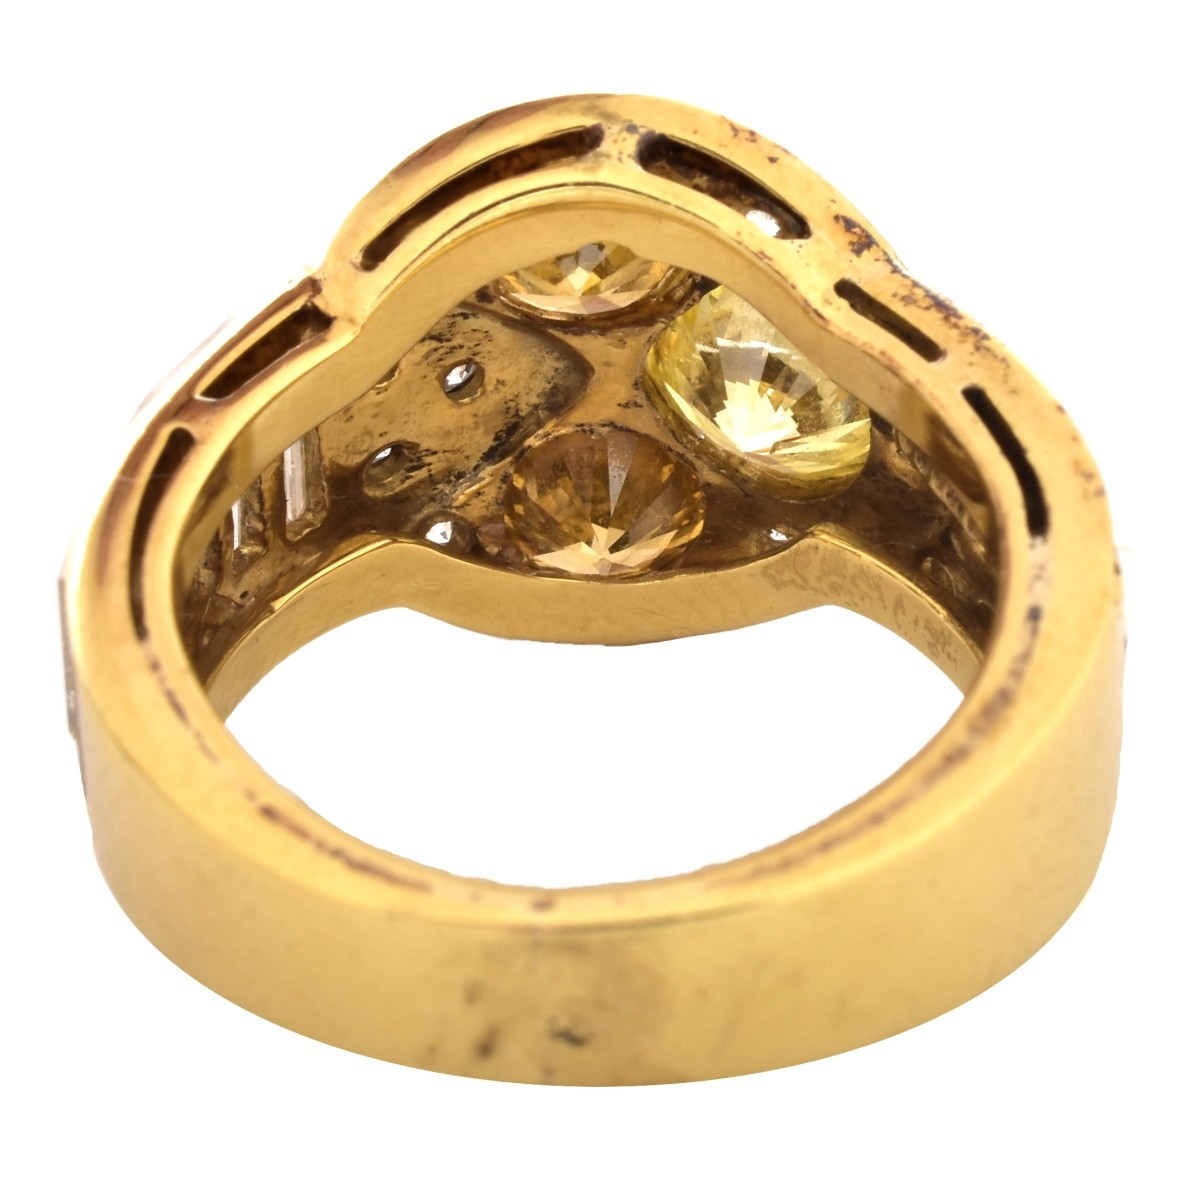 Moba 3.22ct TW Diamond and 18K Gold Ring